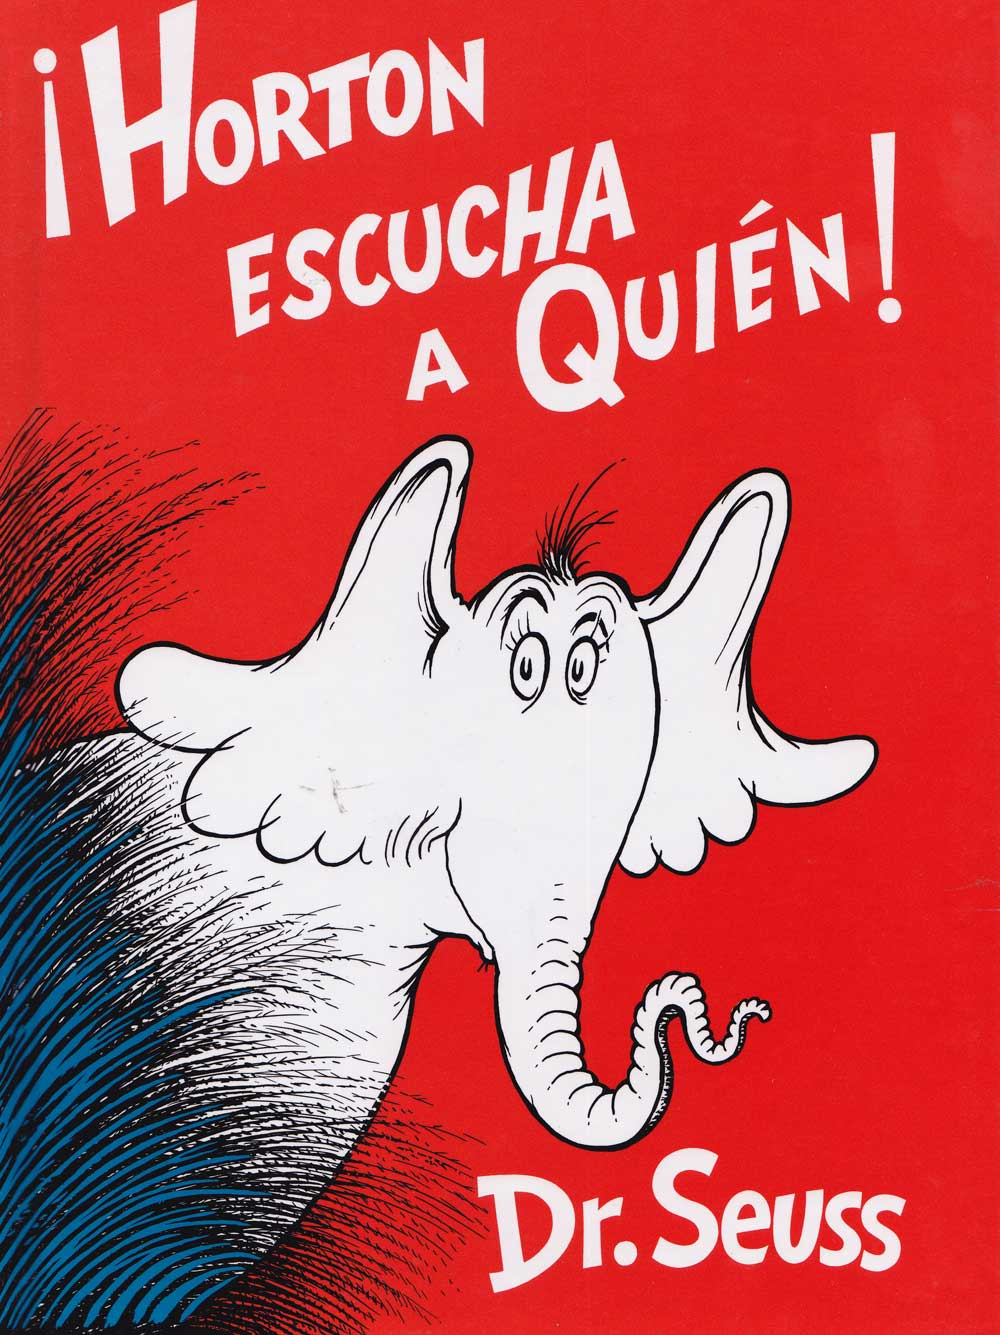 Horton escucha a quien, Horton Hears a Who, Del Sol Books